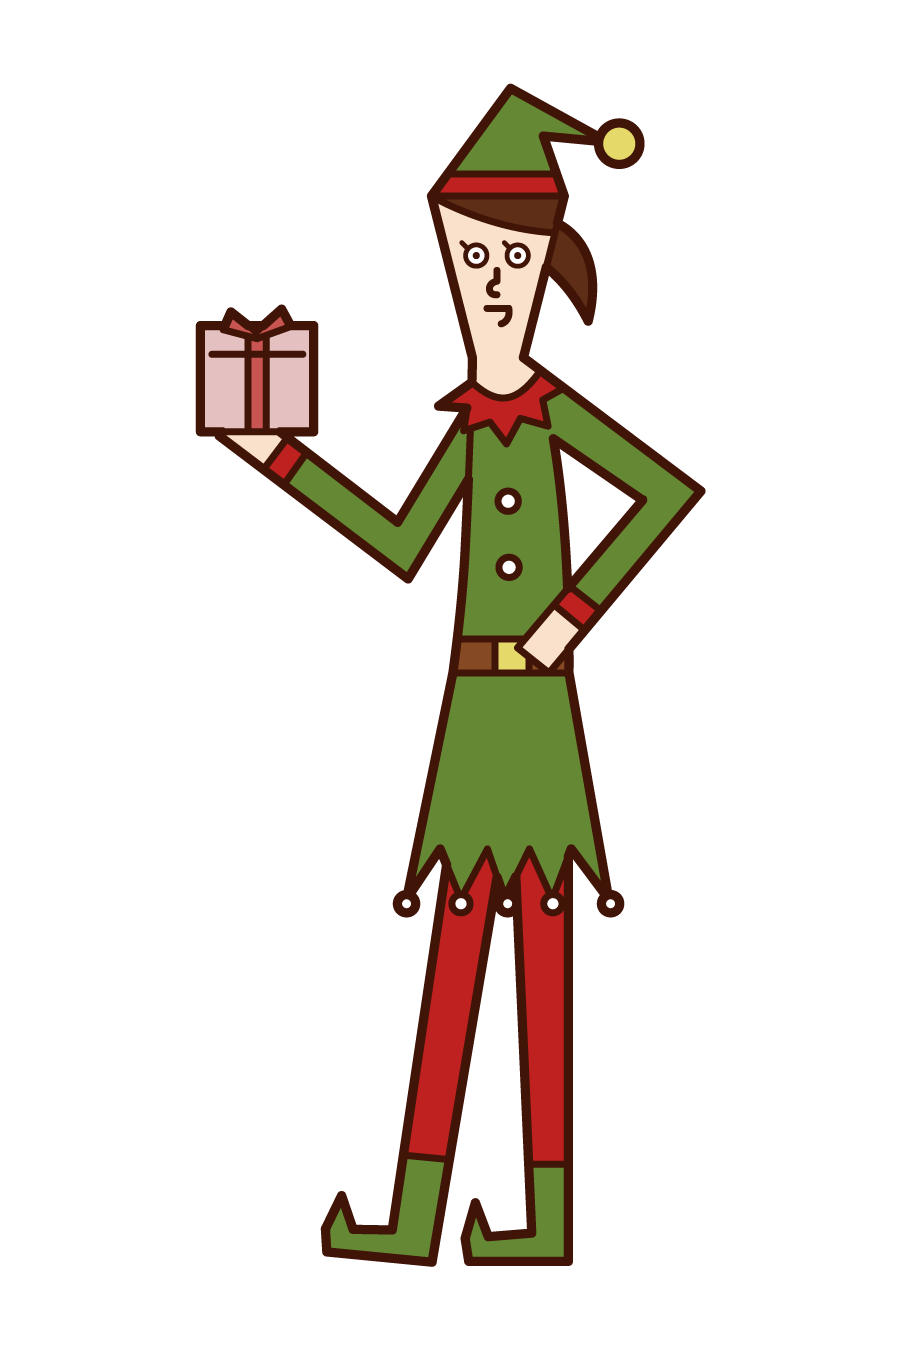 Illustration of a woman in a Christmas elf costume